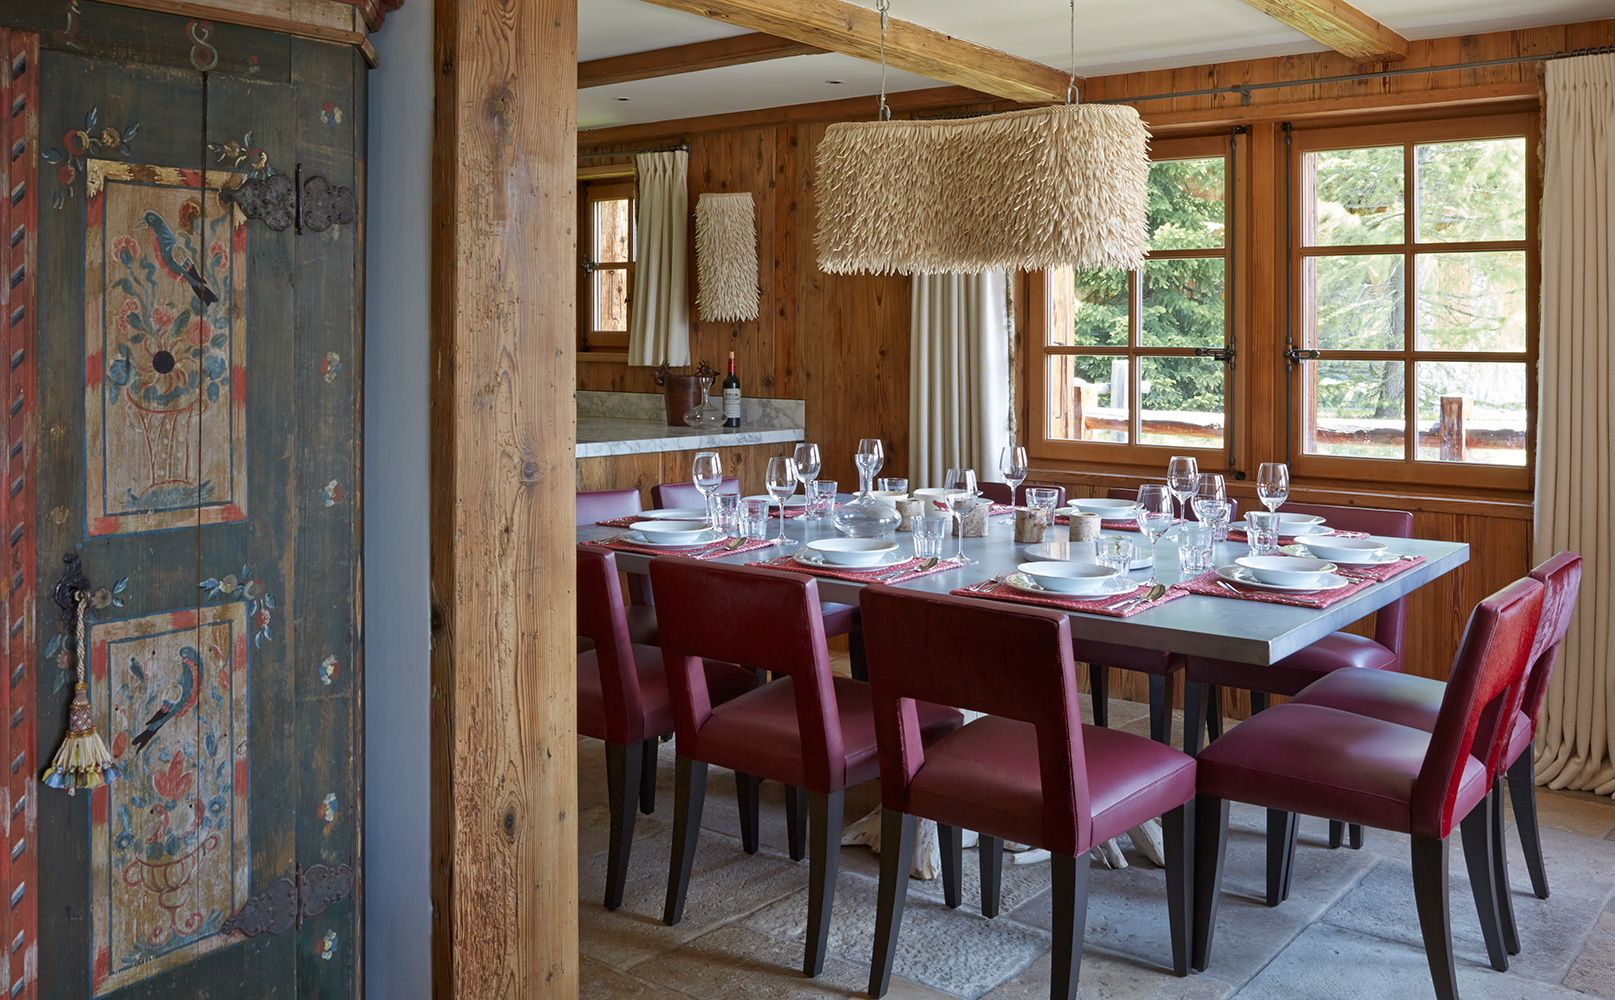 INTERIOR DESIGN ∙ CHALETS ∙ Swiss Chalet - Todhunter Earle & INTERIOR DESIGN ∙ CHALETS ∙ Swiss Chalet - Todhunter Earle | crans ...